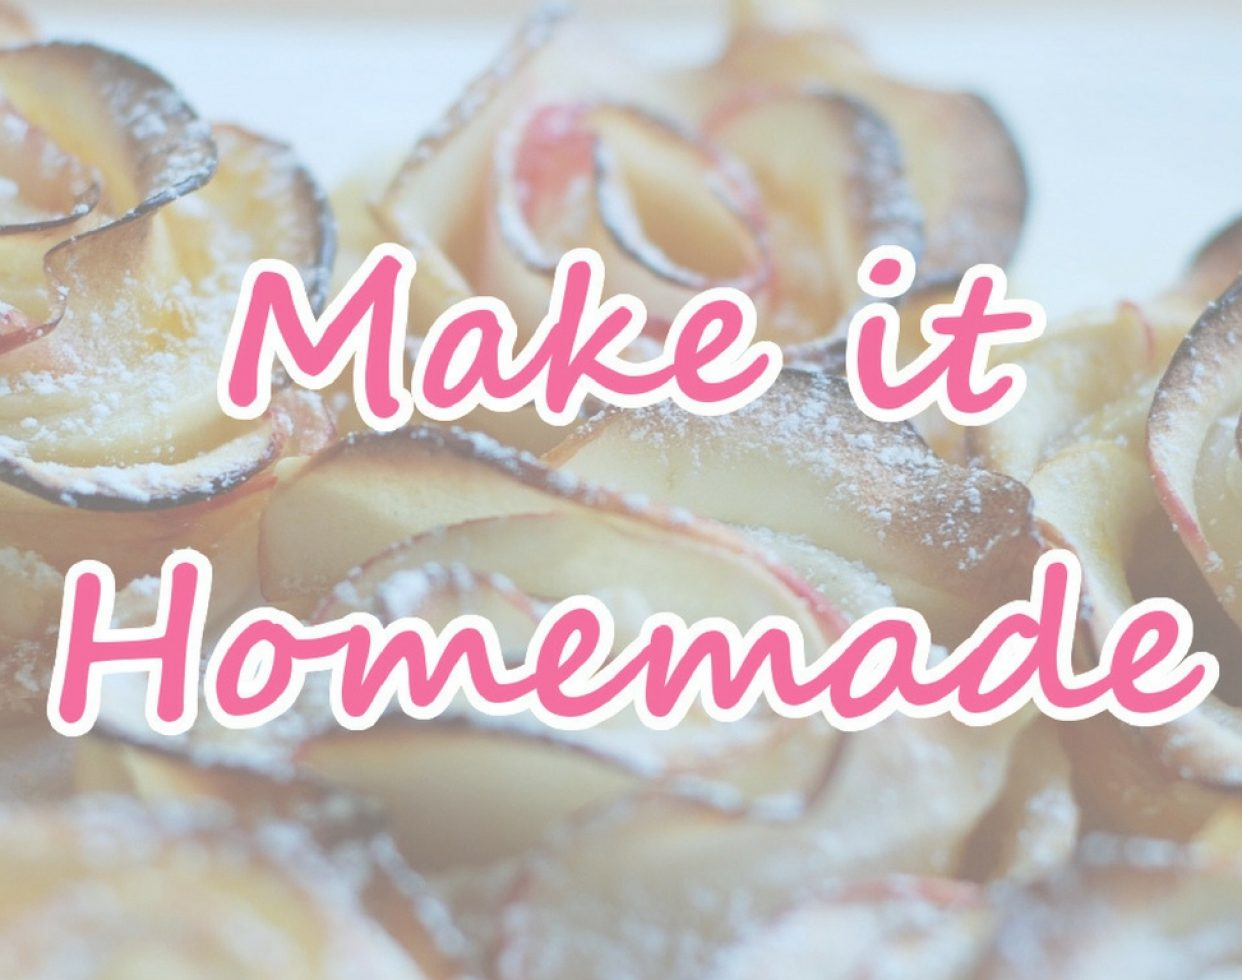 Surprise your valentine with exceptional culinary skills See tutorials online at thestatehornet.com